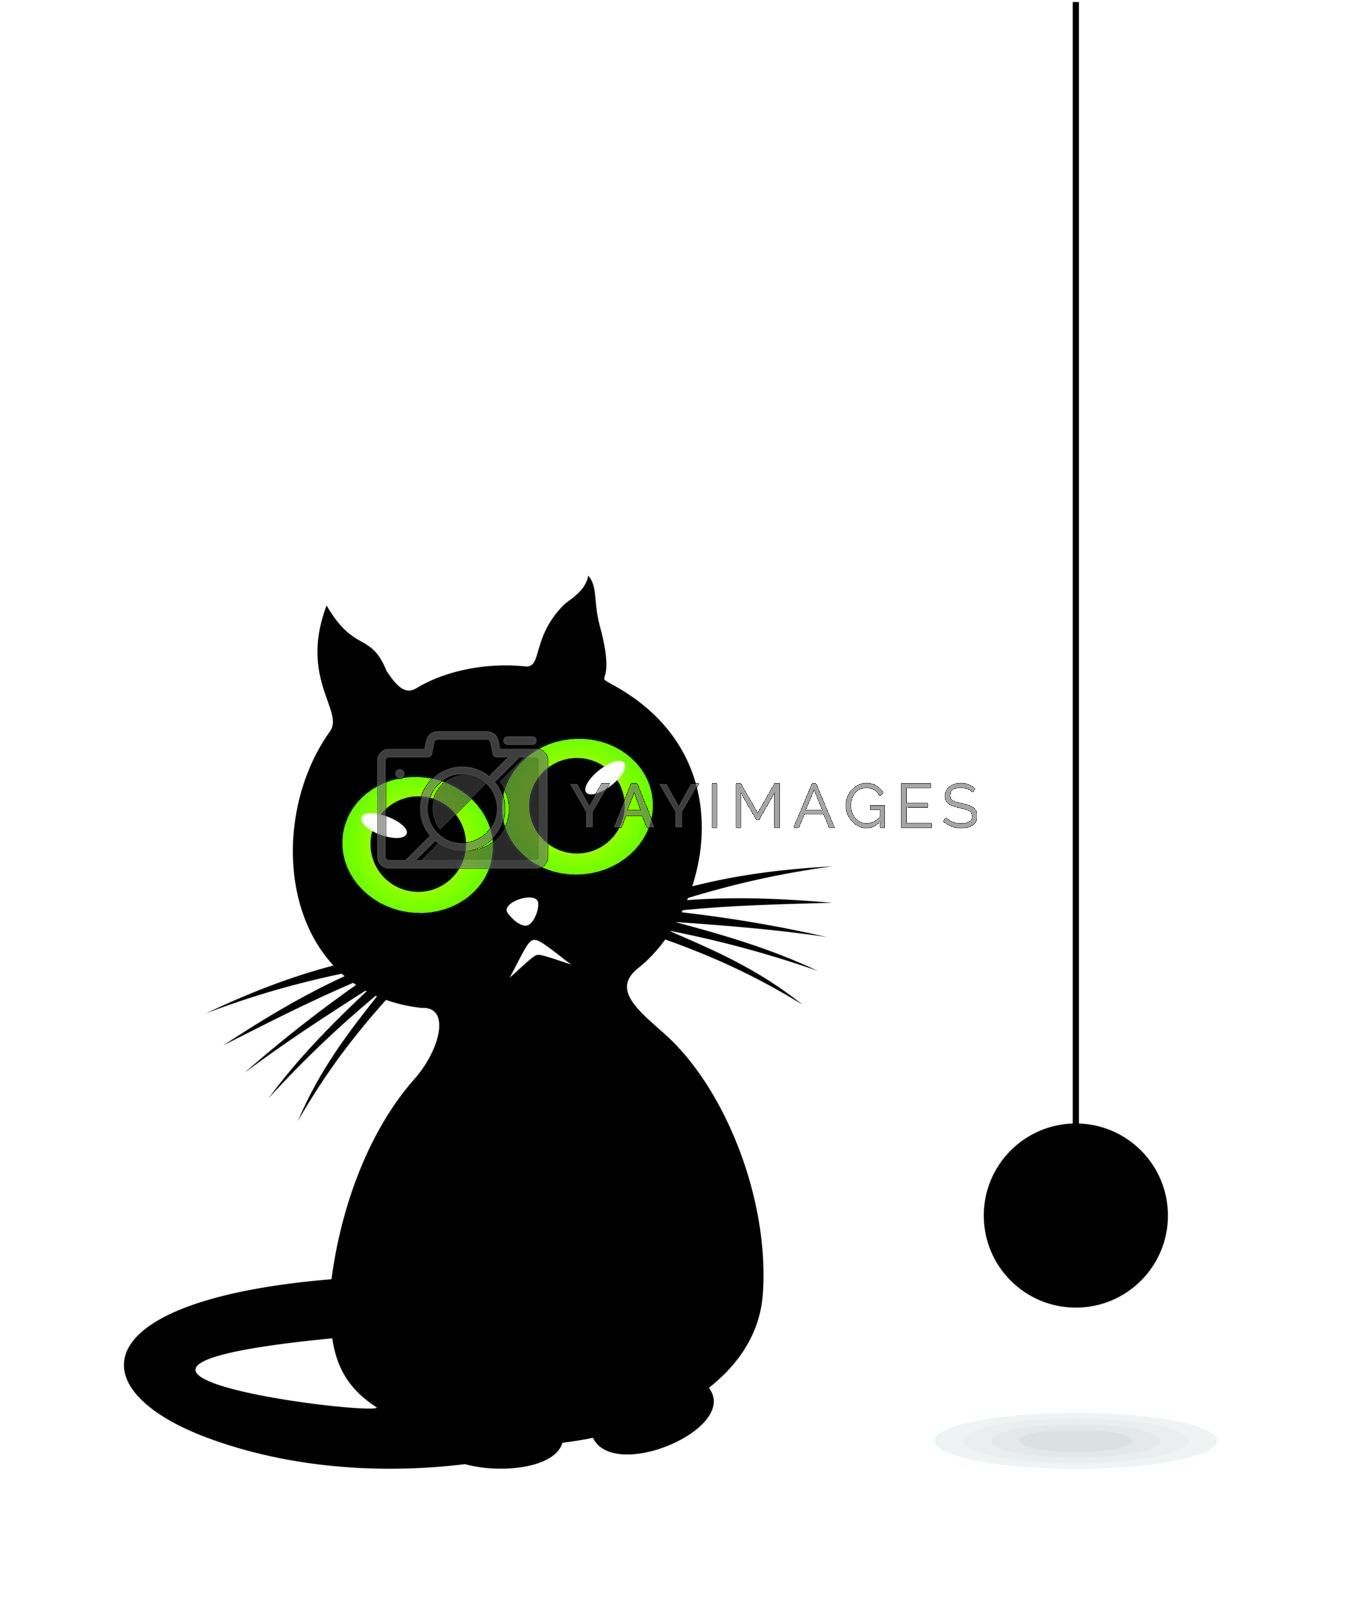 The black cat looks at a hank of threads. A vector illustration